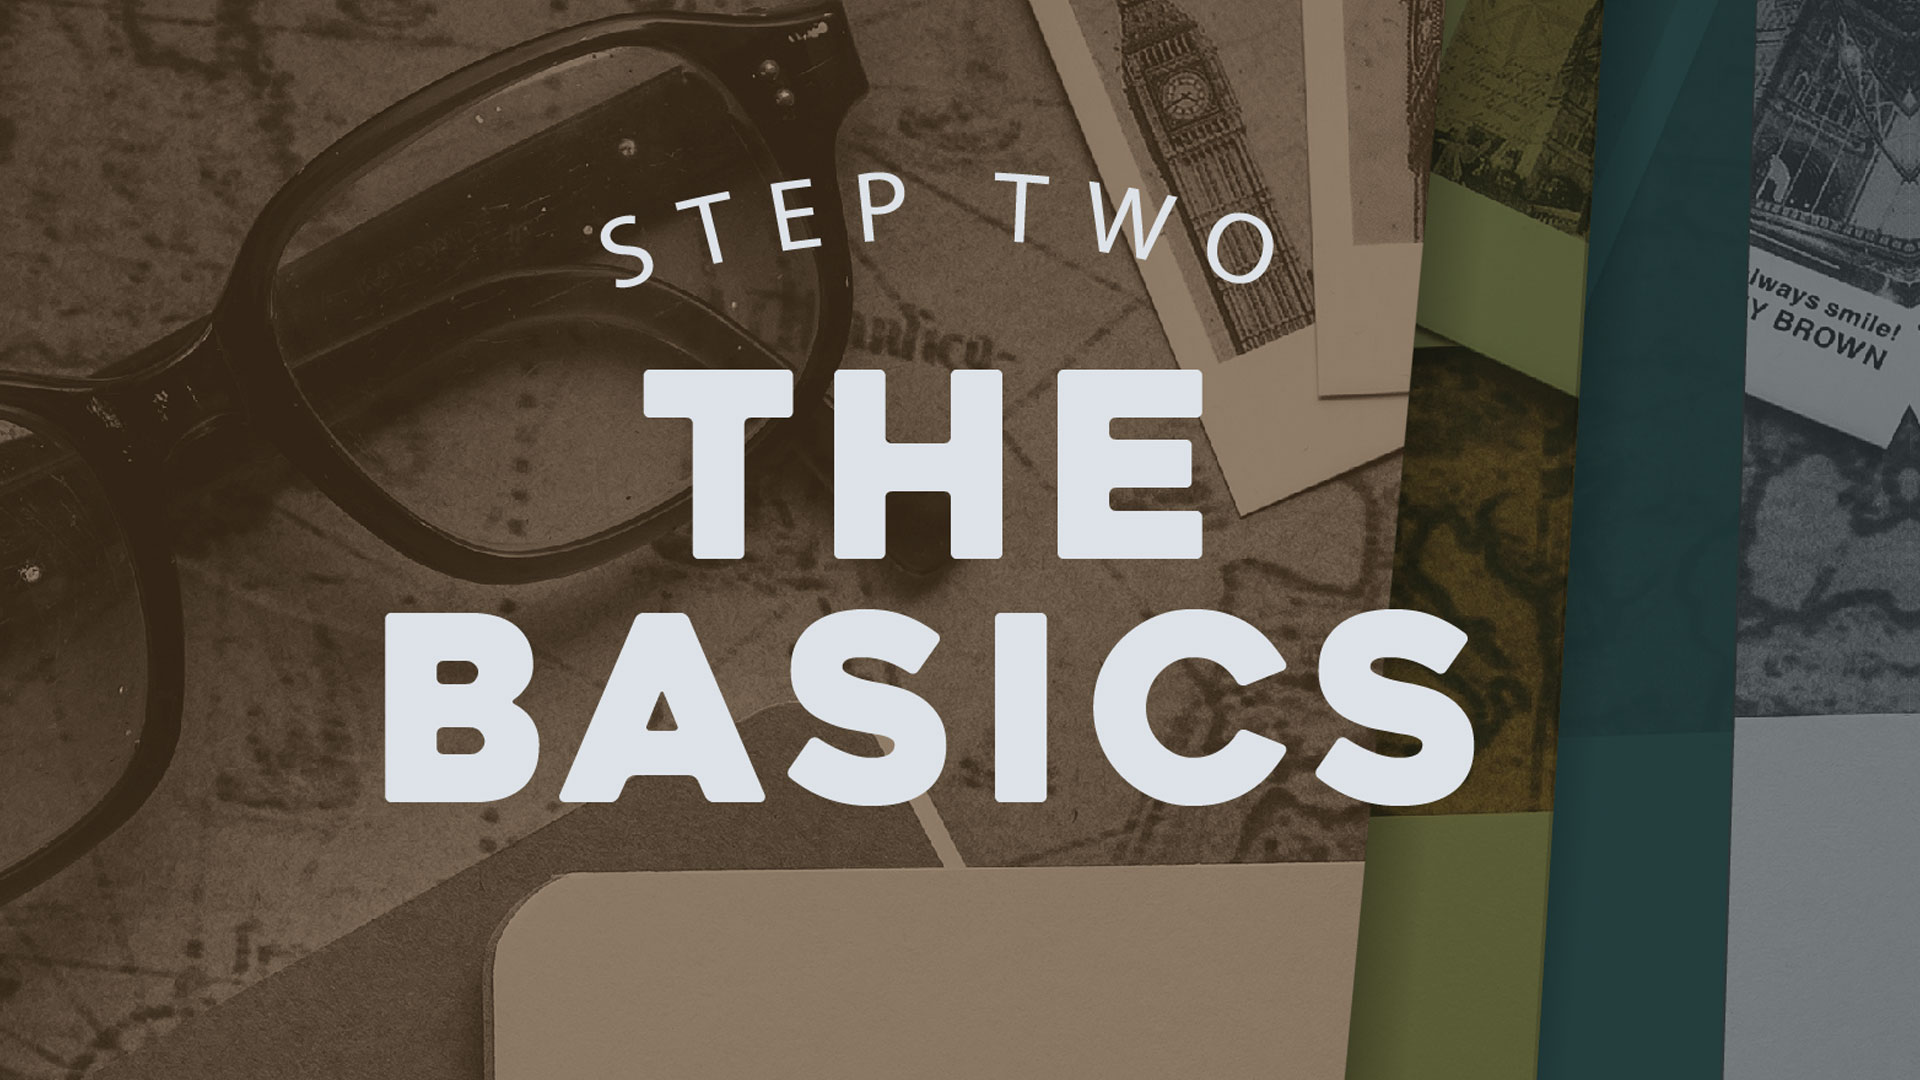 Step 2 - The Basics